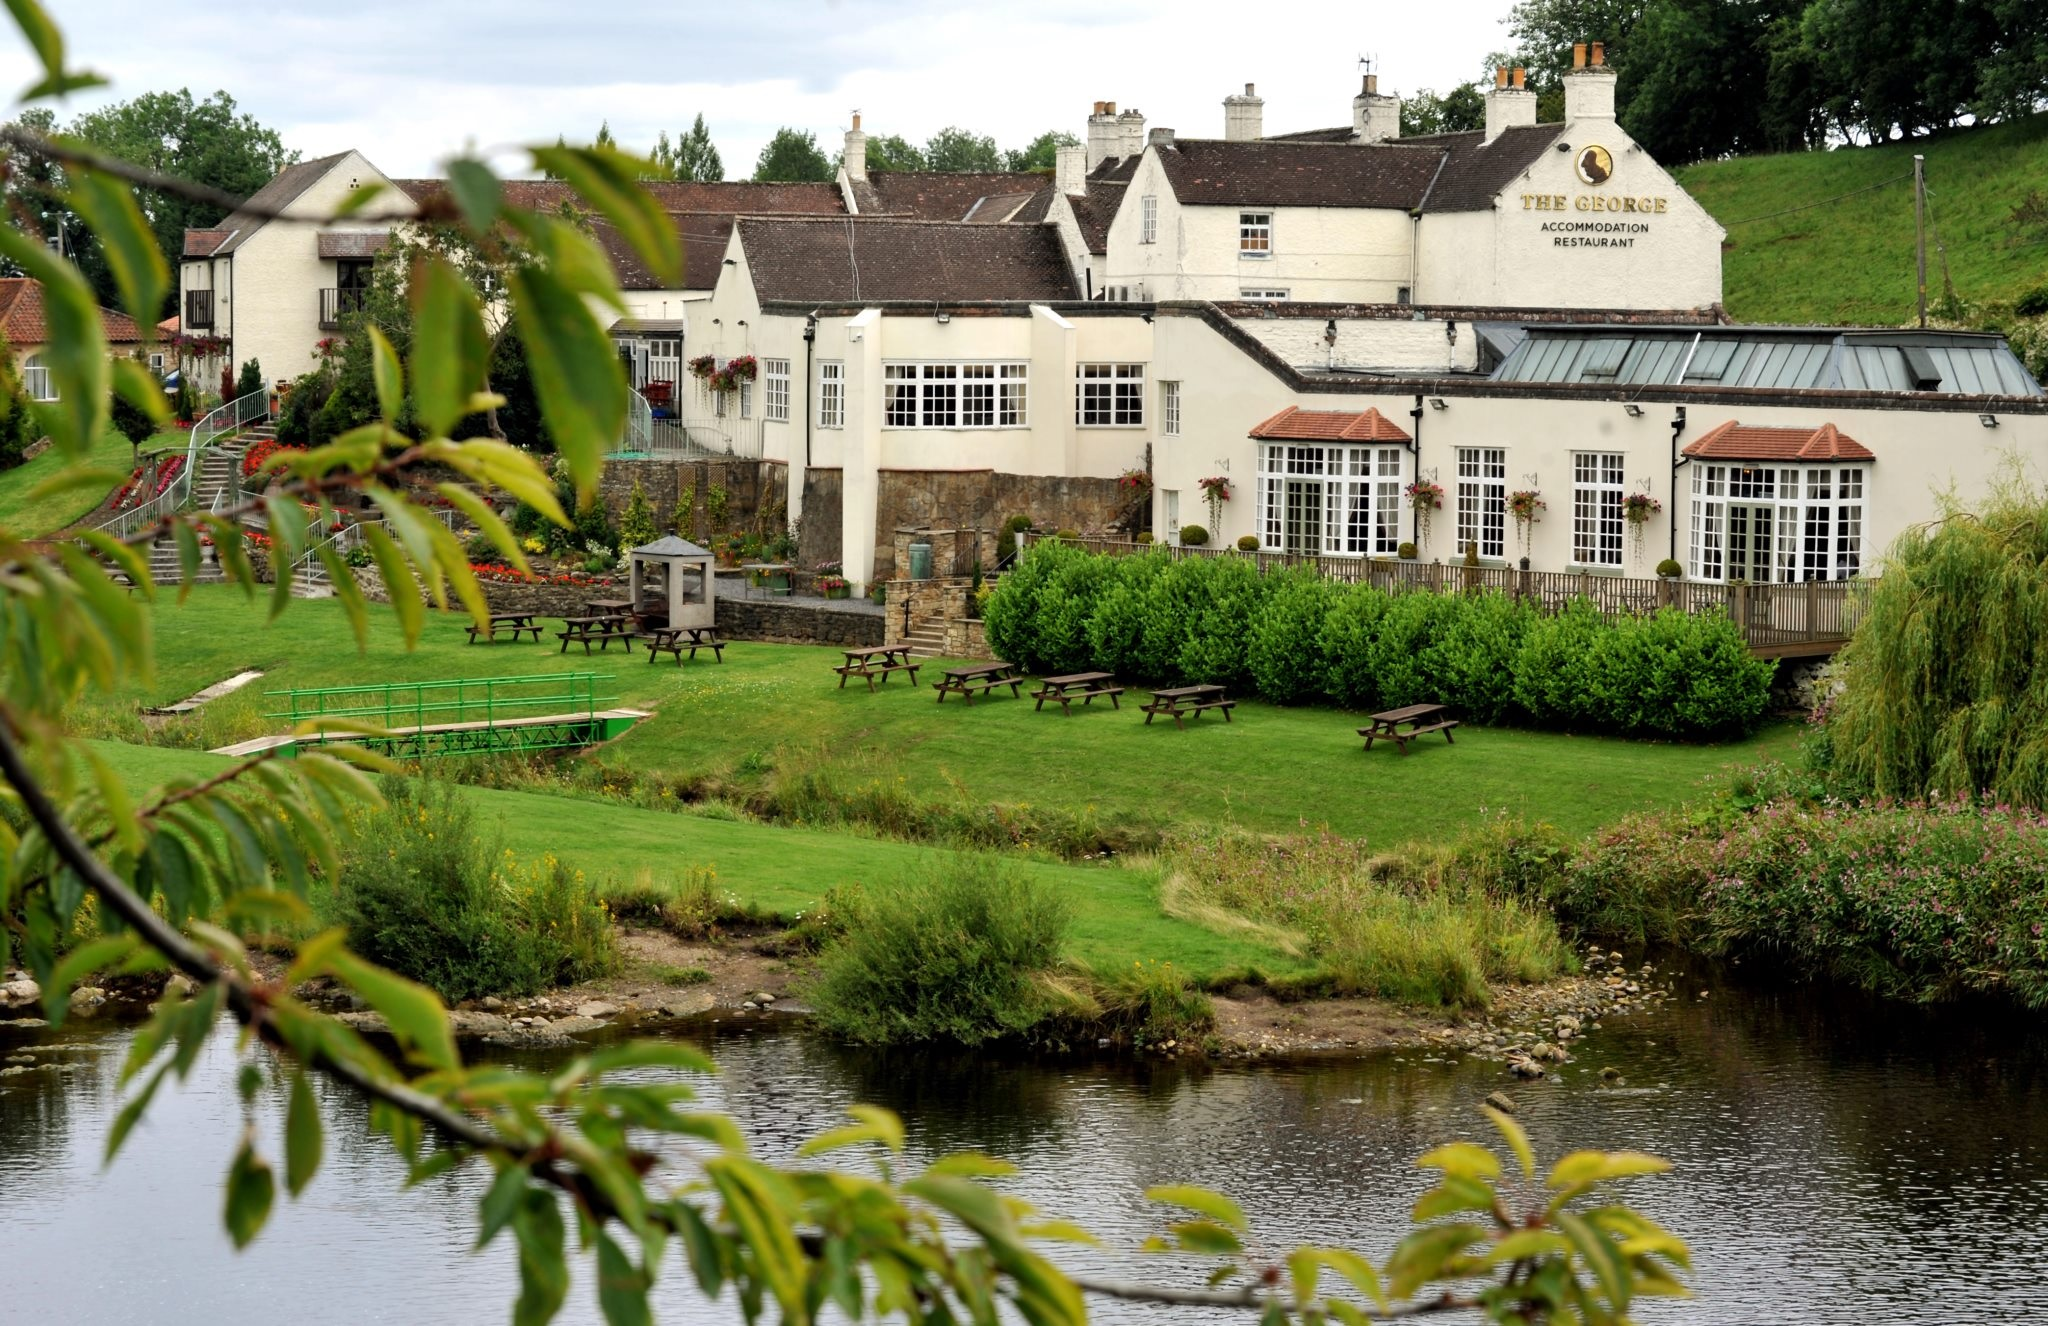 the George in Piercebridge